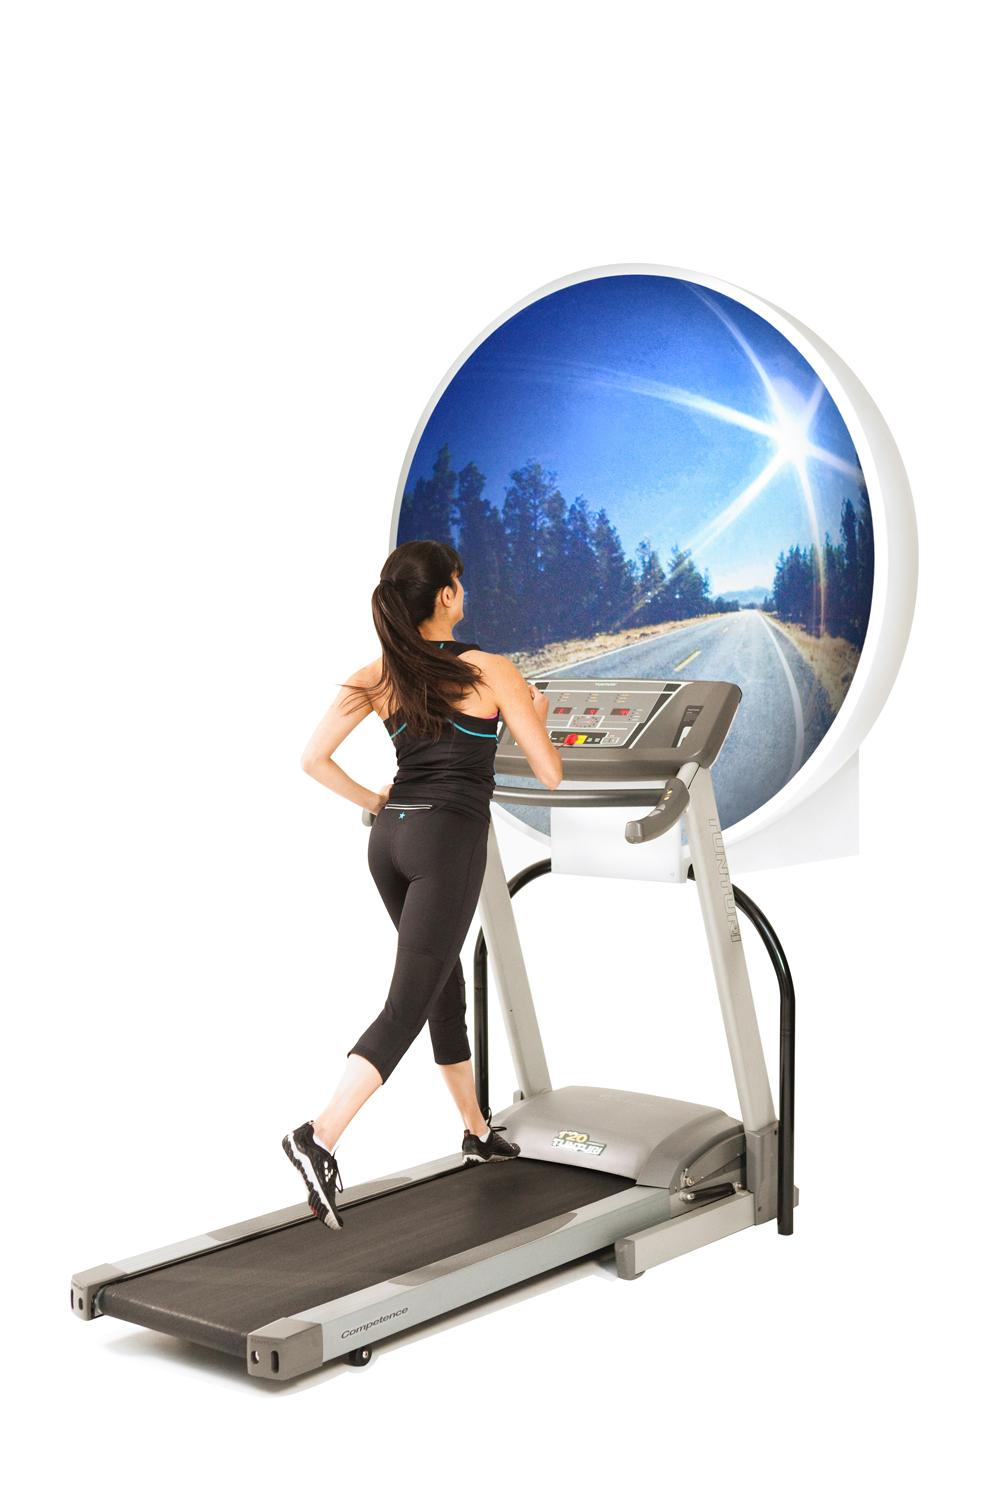 With Zone domes, indoor runners can travel through amazing landscapes – all without leaving the gym